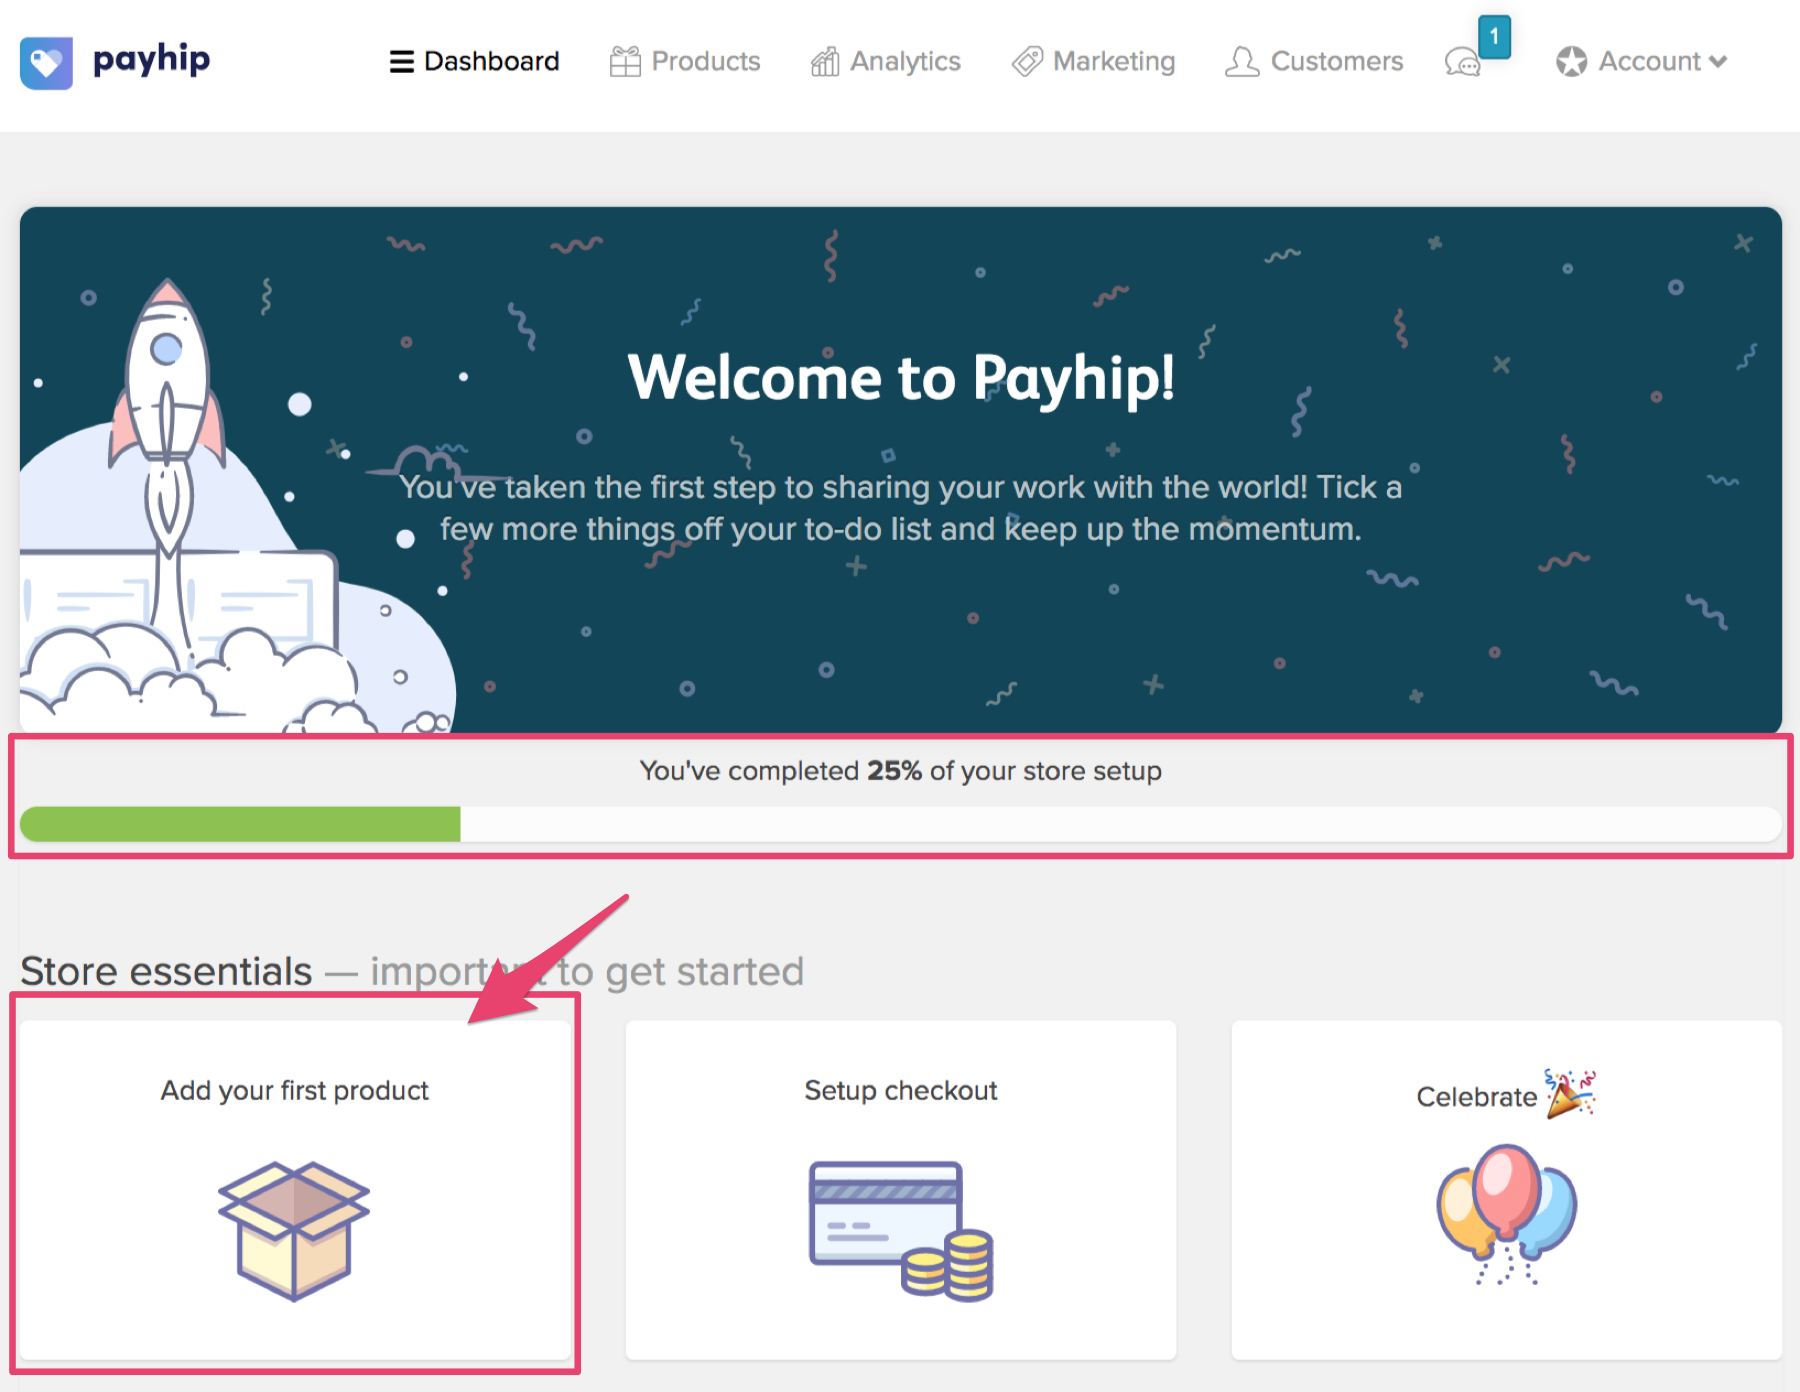 how to create a new product in payhip